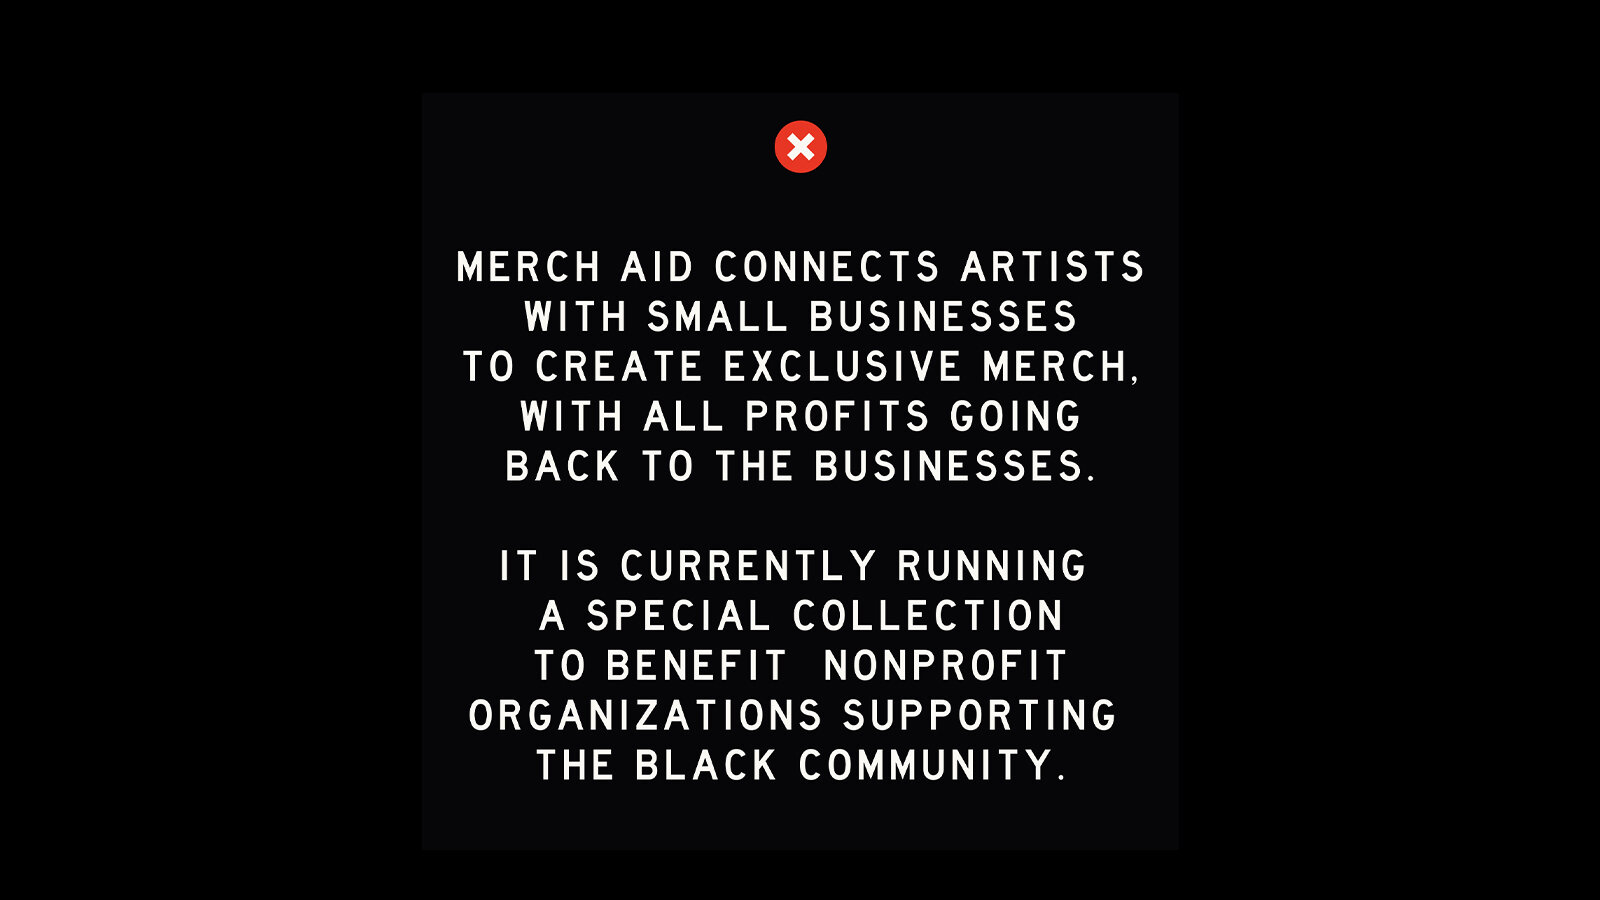 """White text on a black background. """"Merch Aid connects artists with small businesses to create exclusive merch, with all profits going back to the businesses. It is currently running a special collection to benefit nonprofit organizations supporting the Black community."""""""